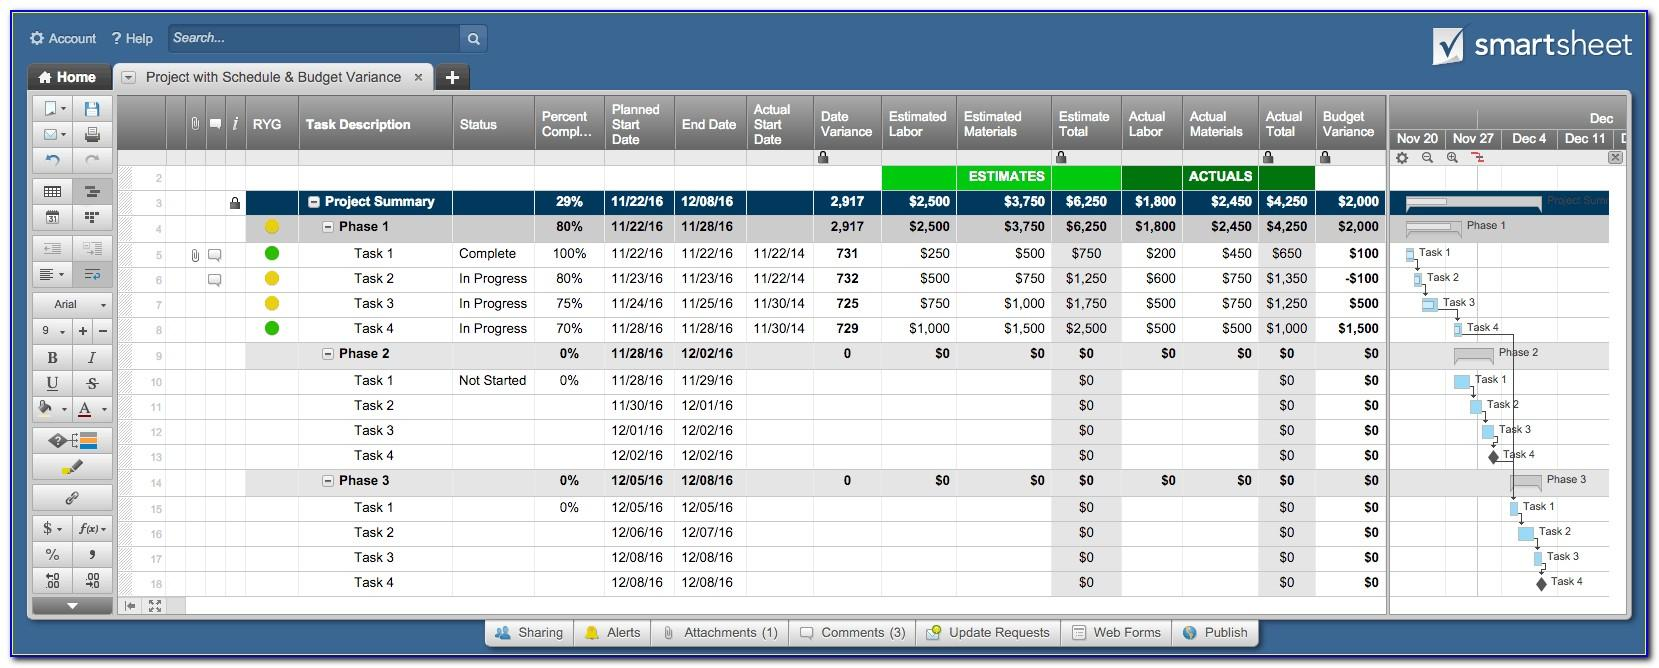 Project Management Plan Template Smartsheet